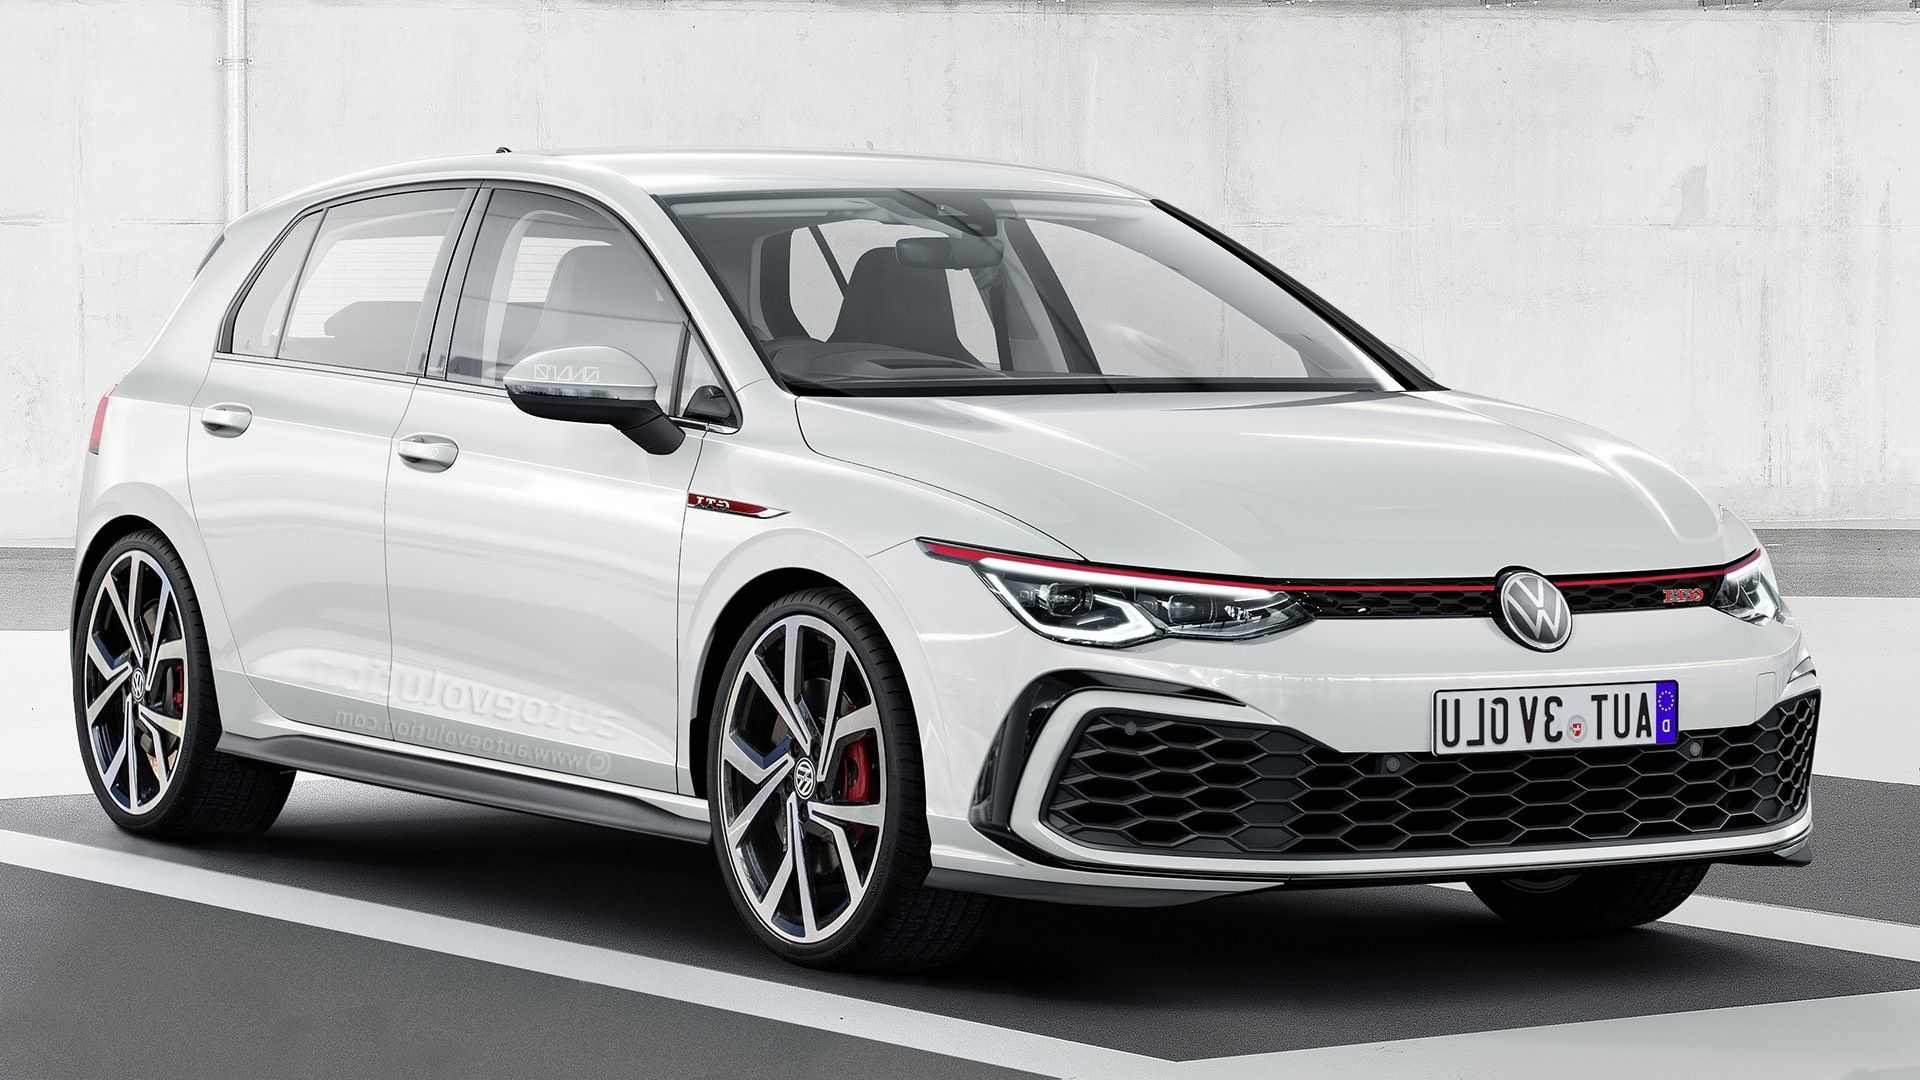 2021 Volkswagen Golf Gti Release Date Color Prices In 2020 Volkswagen Golf Gti Golf Gti Volkswagen